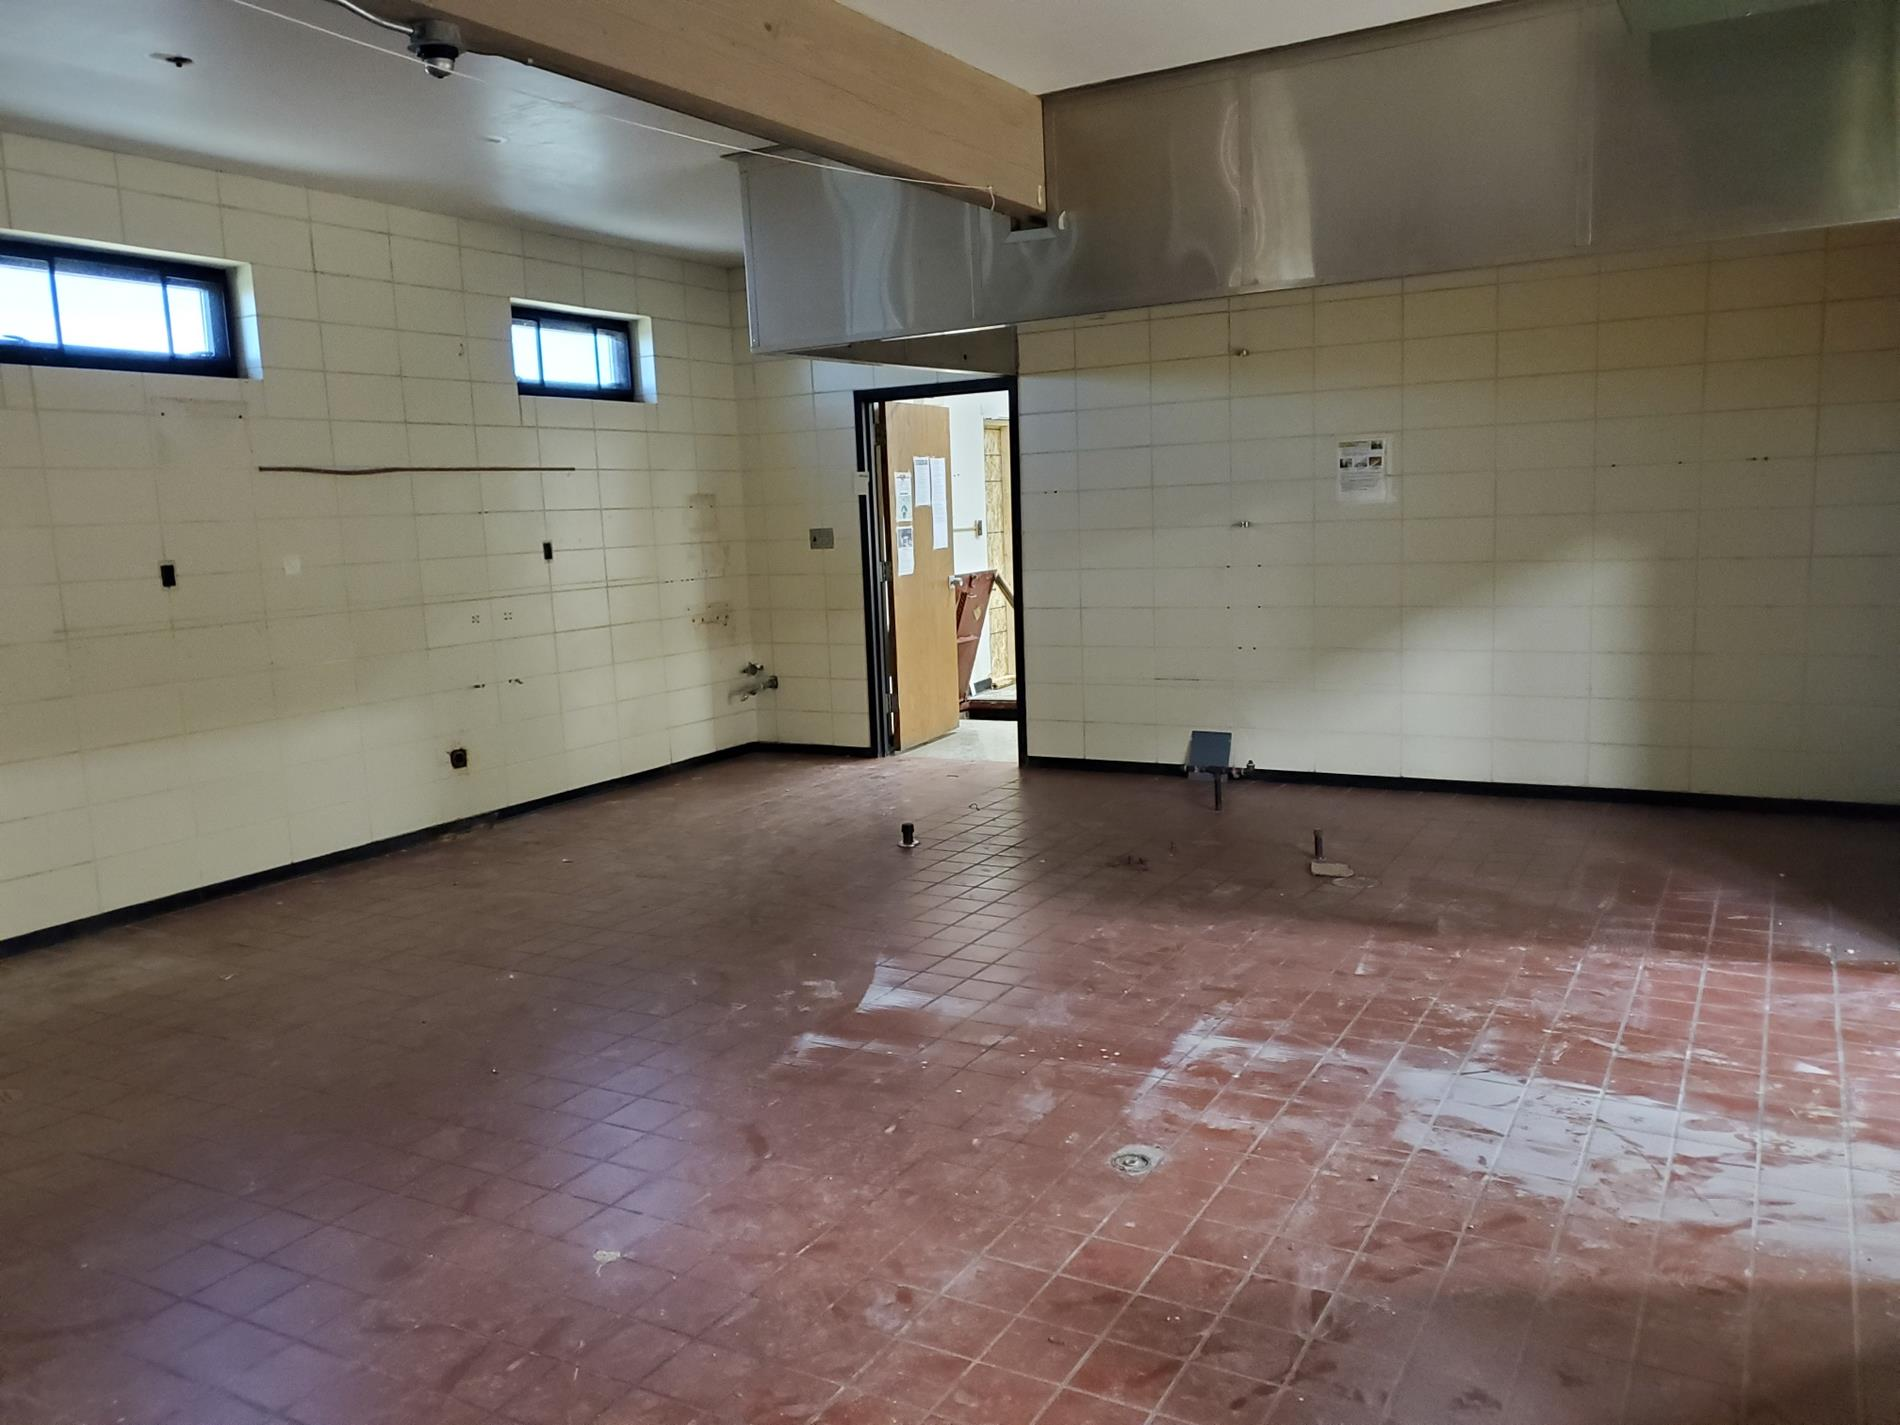 The kitchen that will be demolished